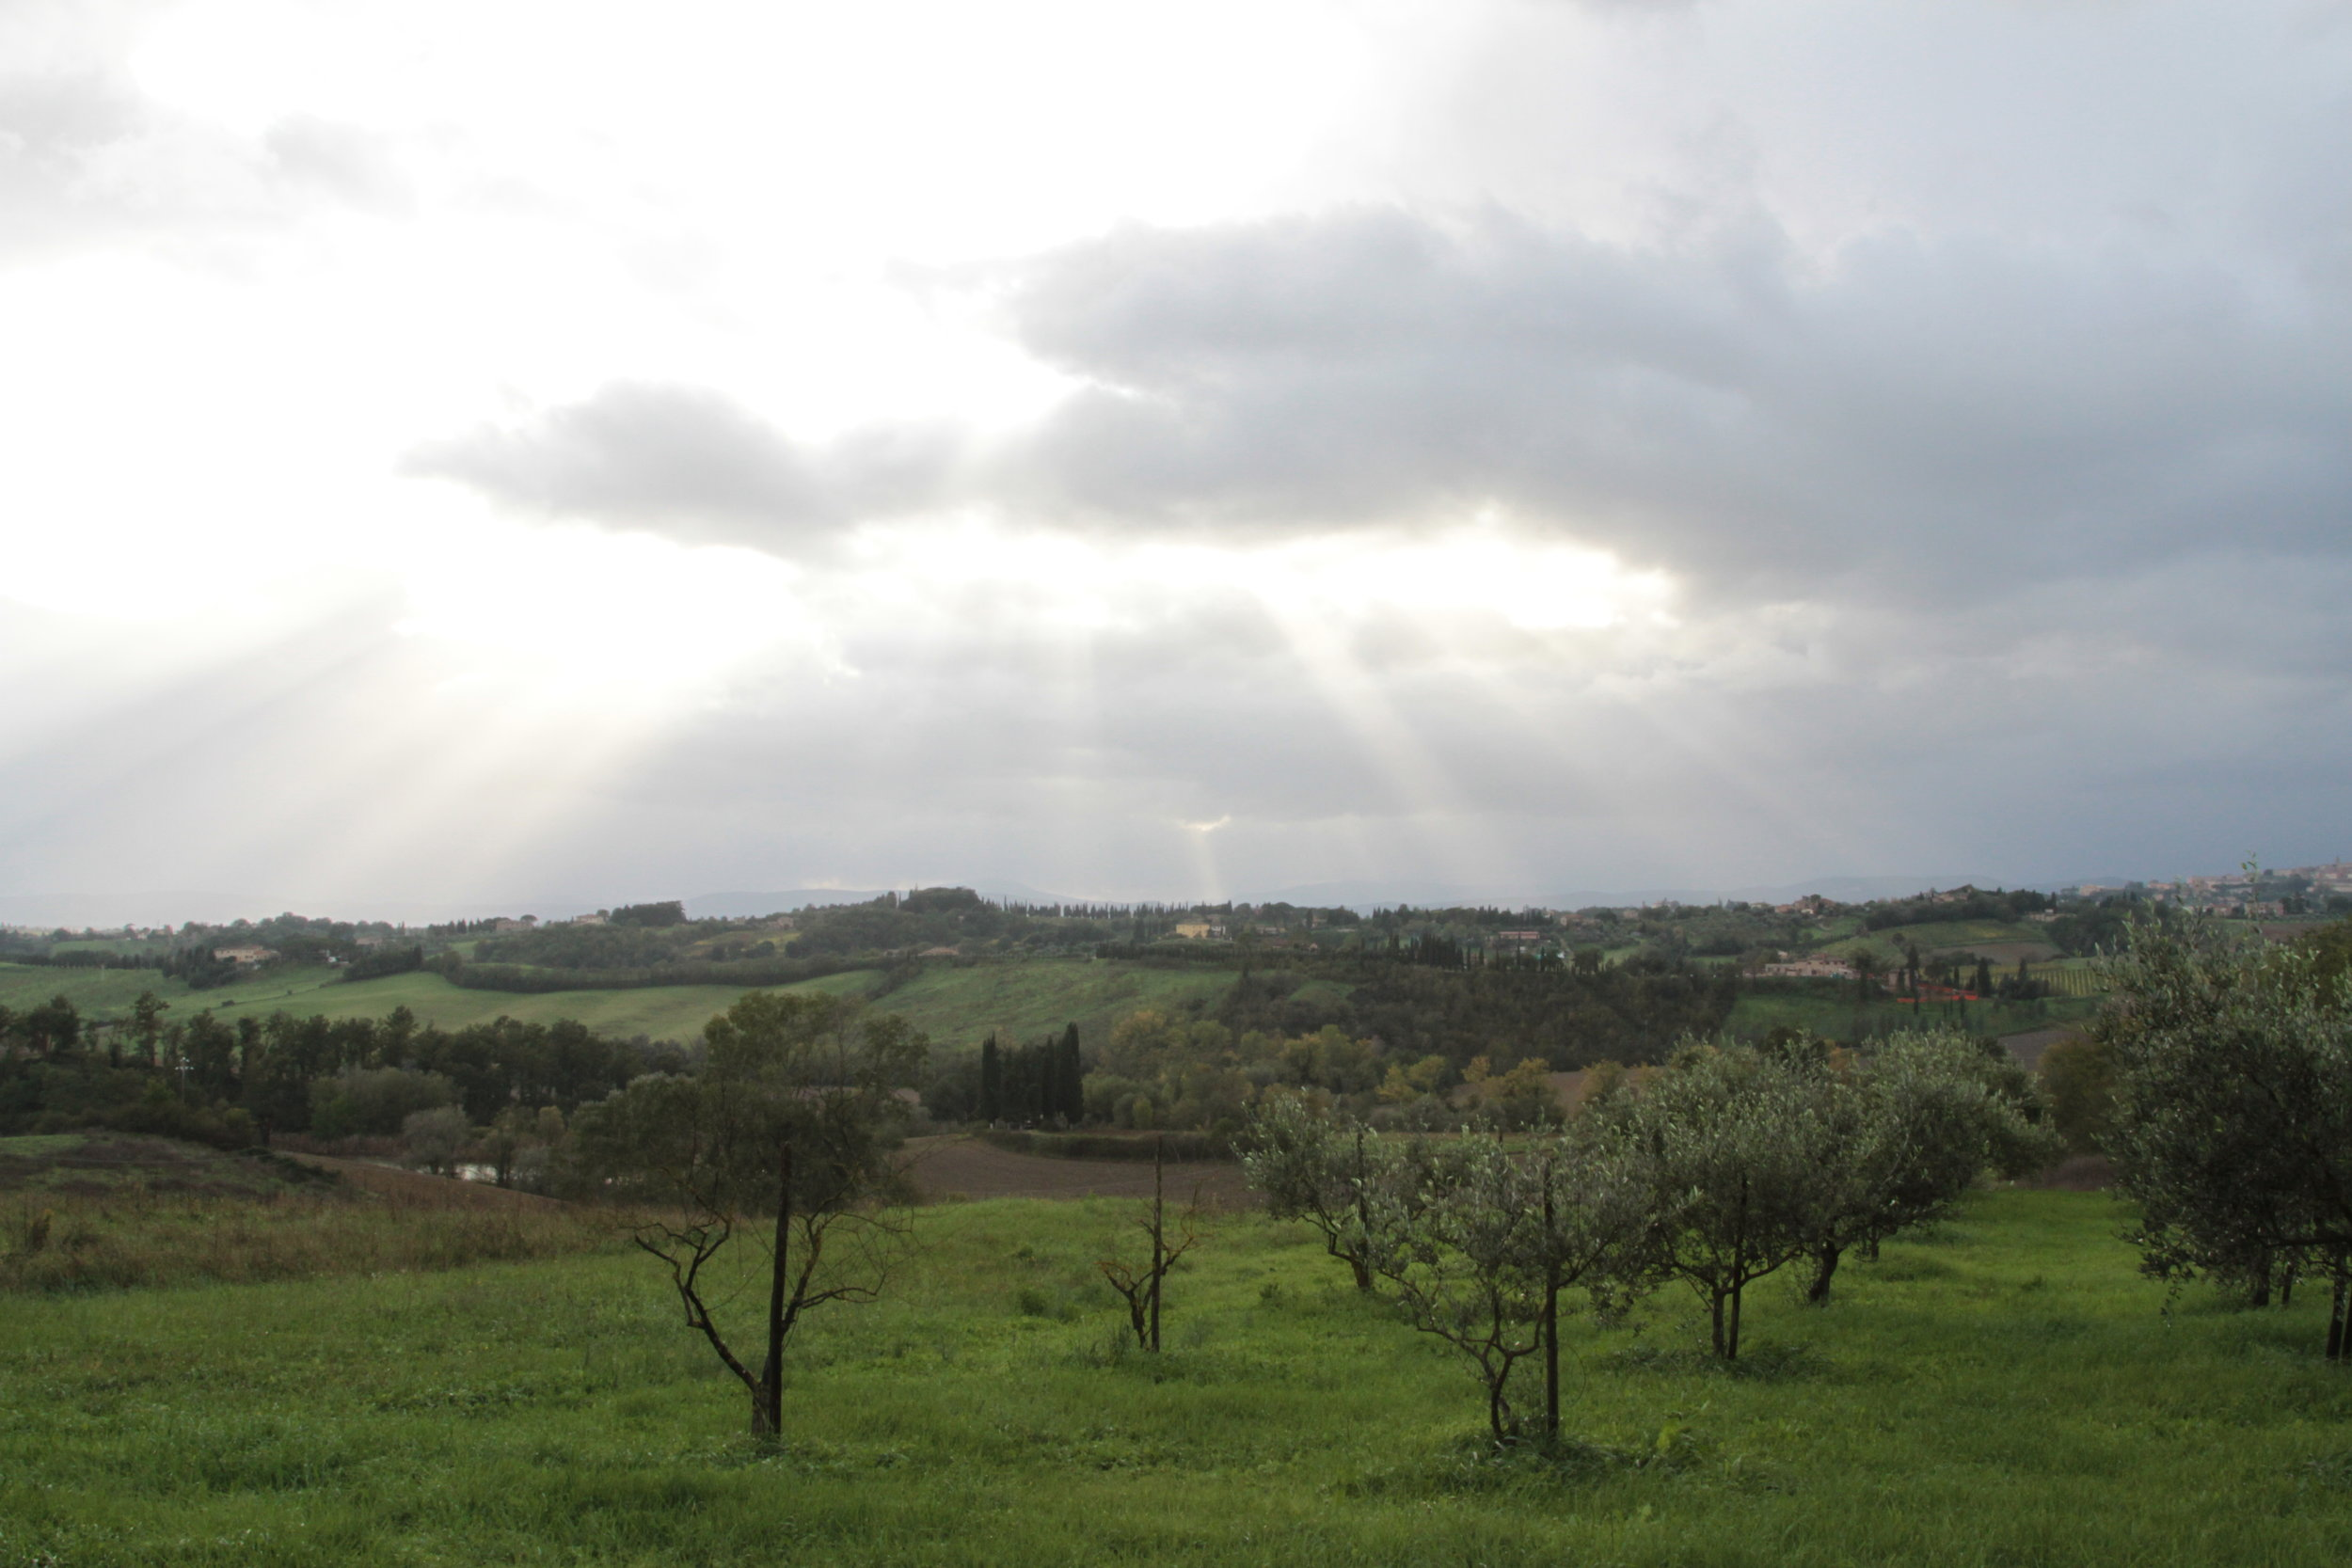 siena-countryside_8181258130_o.jpg